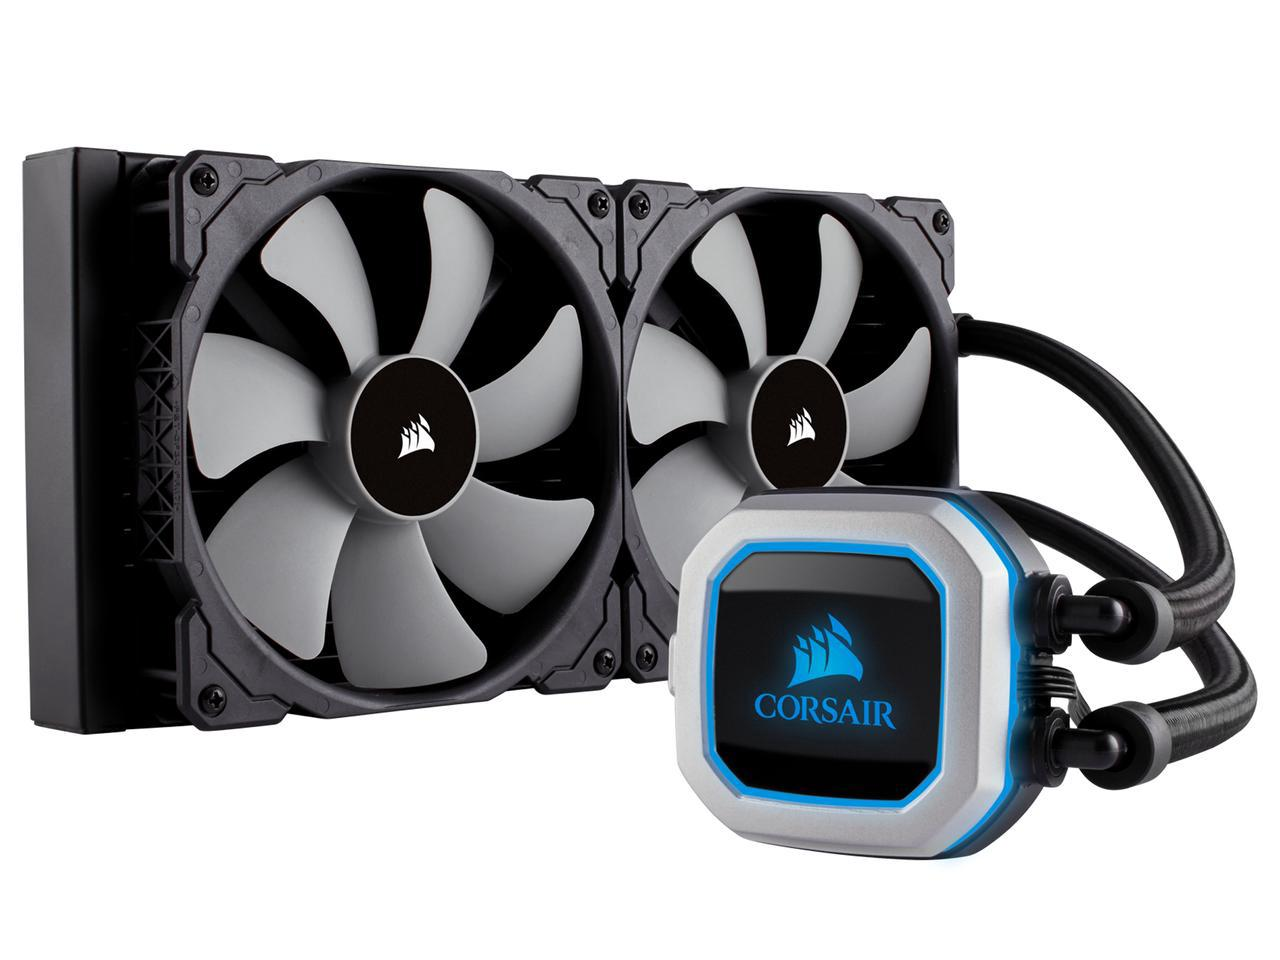 Corsair's H115i PRO and H150i PRO coolers have been leaked